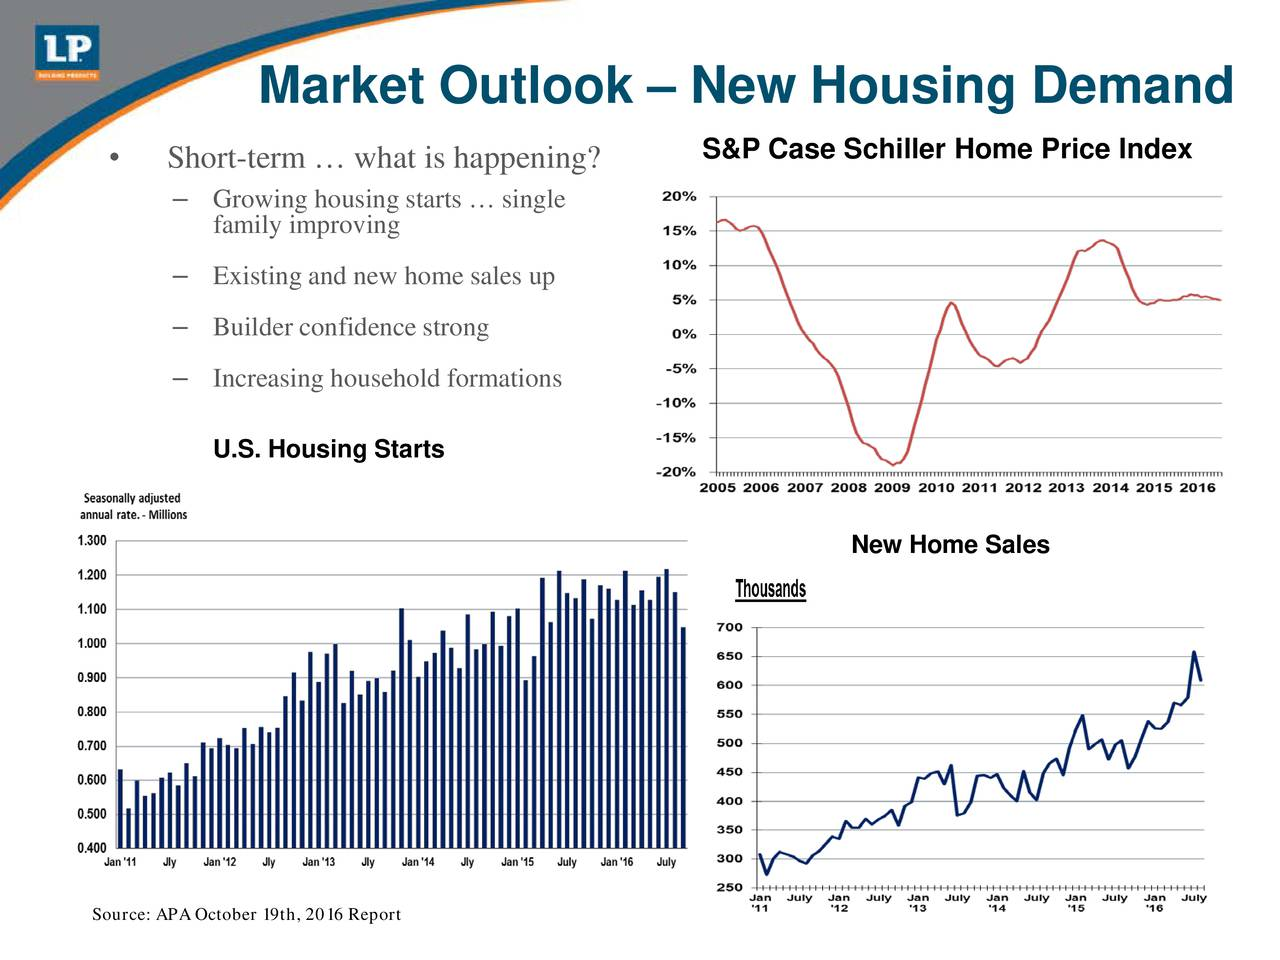 S&P Case Schiller Home Price Index Short-term  what is happening? Growing housing starts  single family improving Existing and new home sales up Builder confidence strong Increasing household formations U.S. Housing Starts New Home Sales Source: APA October 19th, 2016 Report